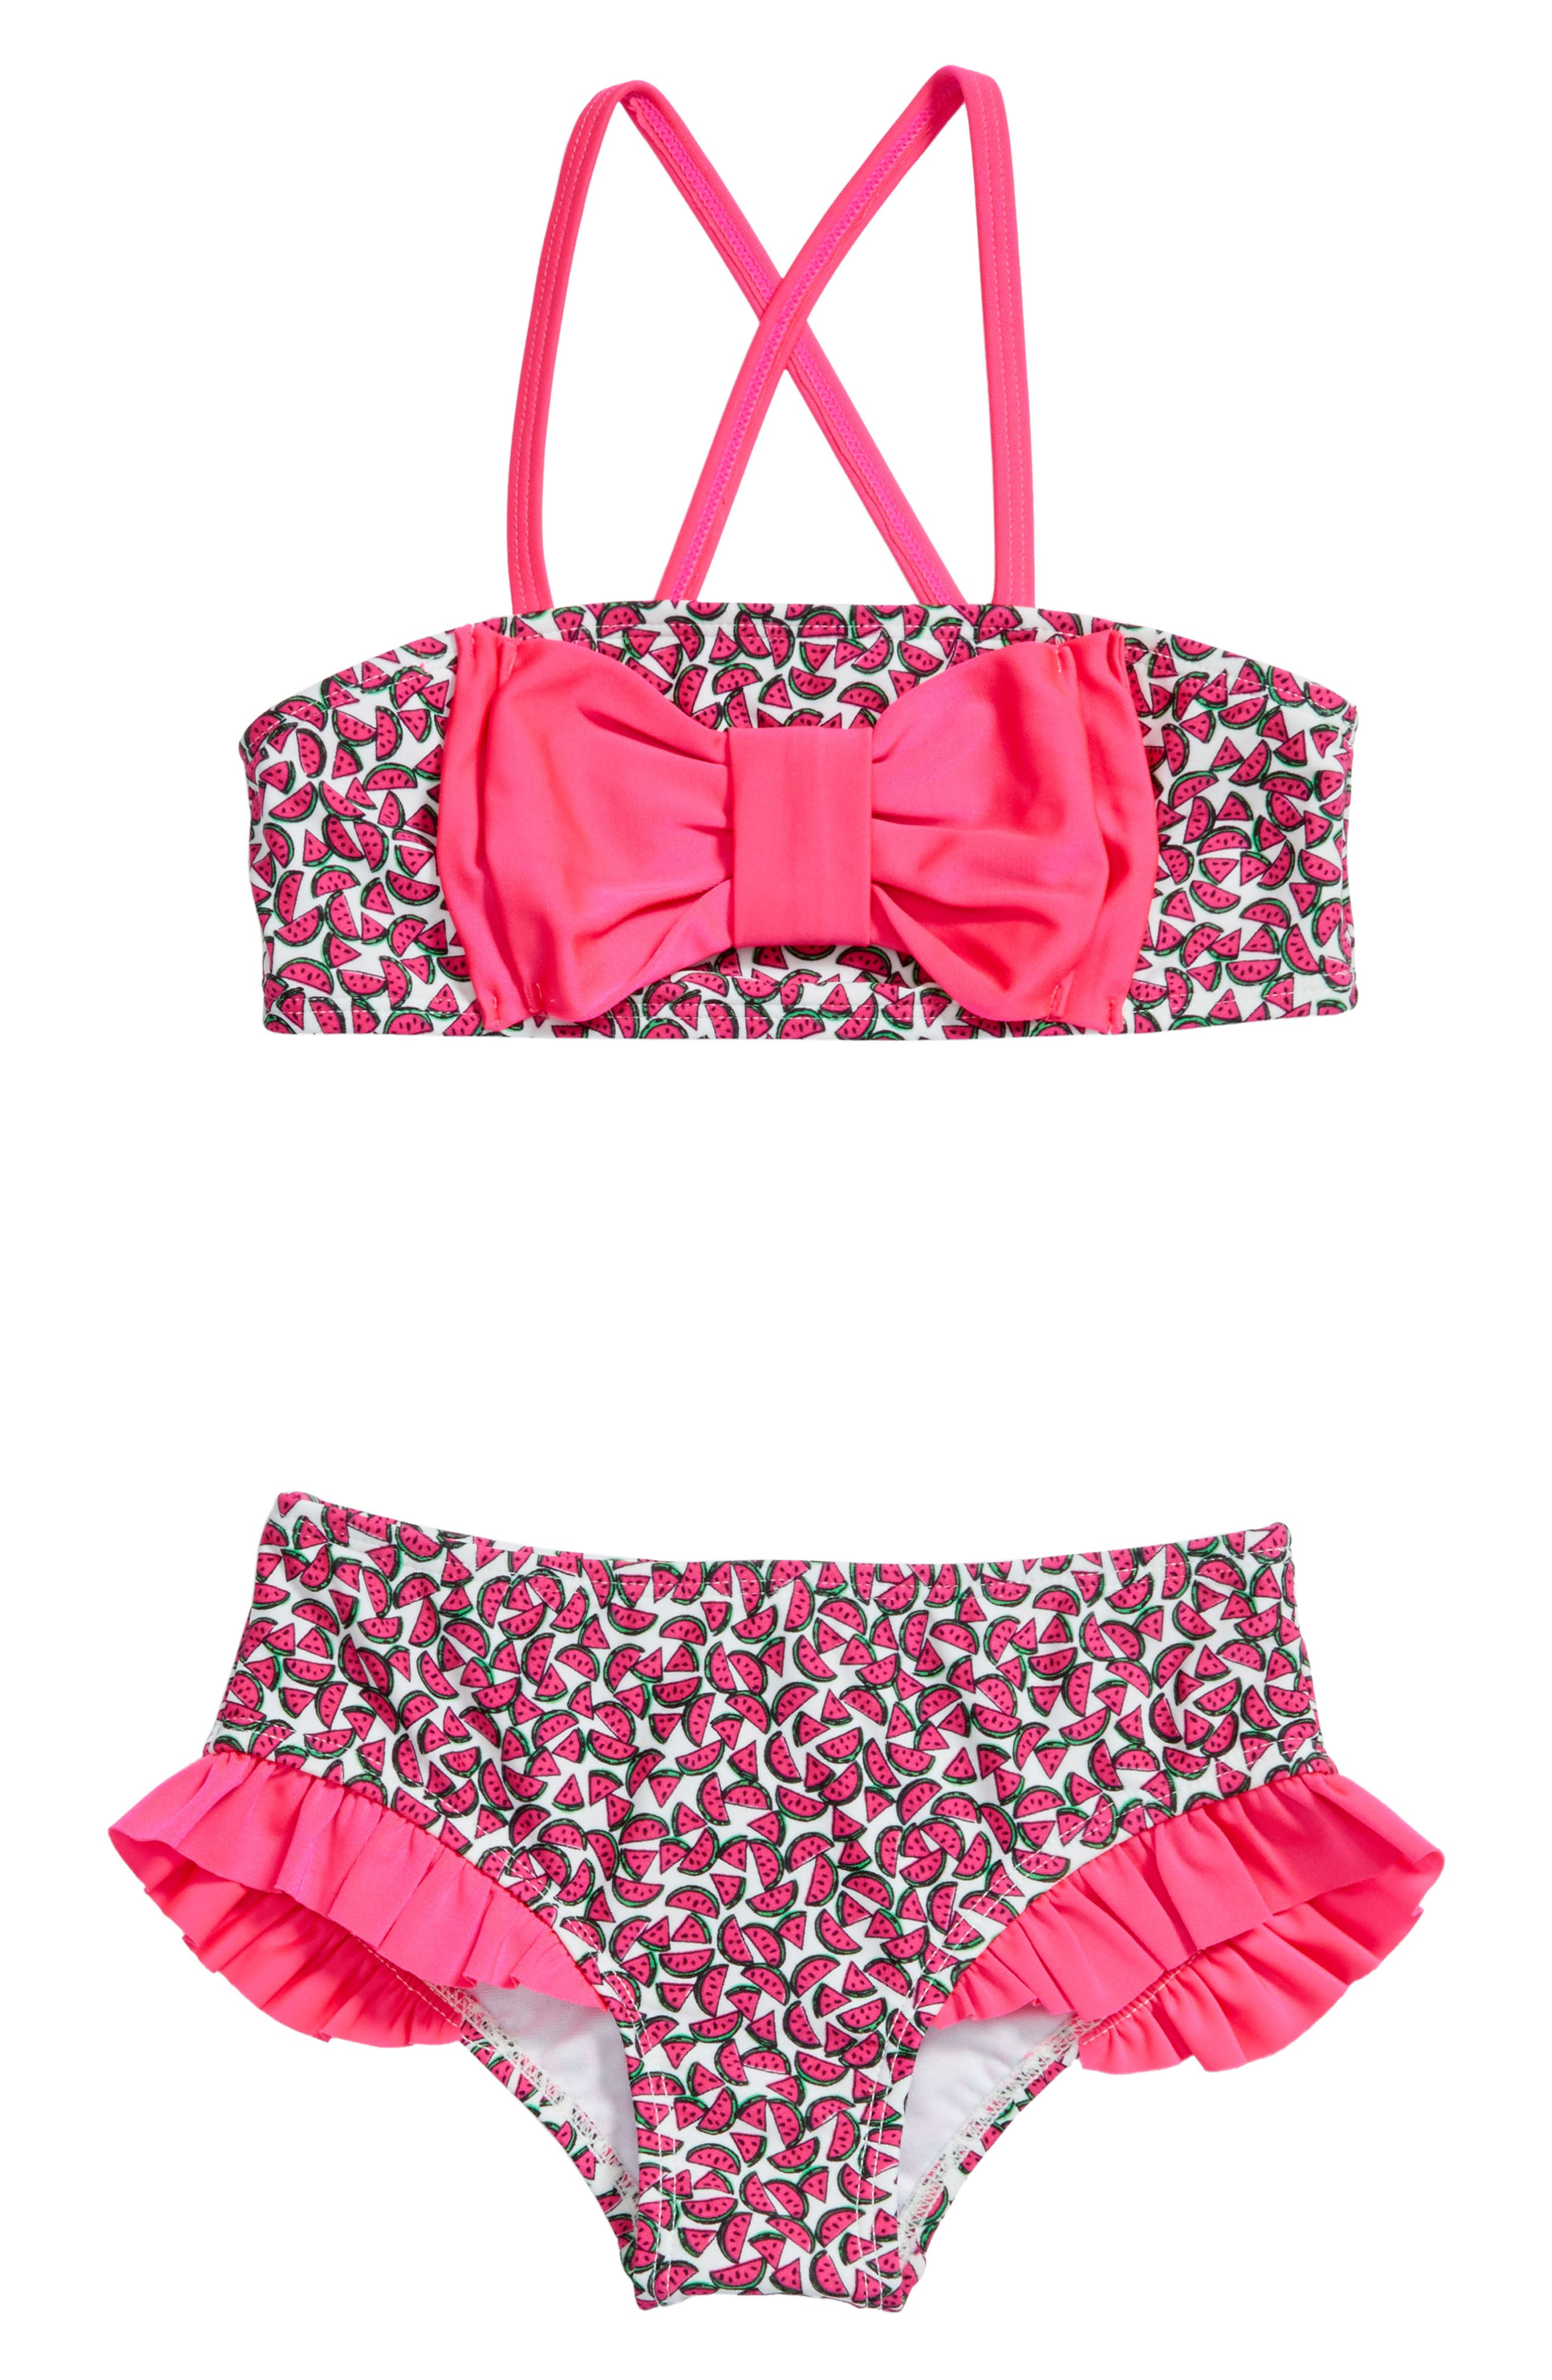 Alternate Image 1 Selected - Hula Star Watermelon Two-Piece Swimsuit (Toddler Girls & Little Girls)